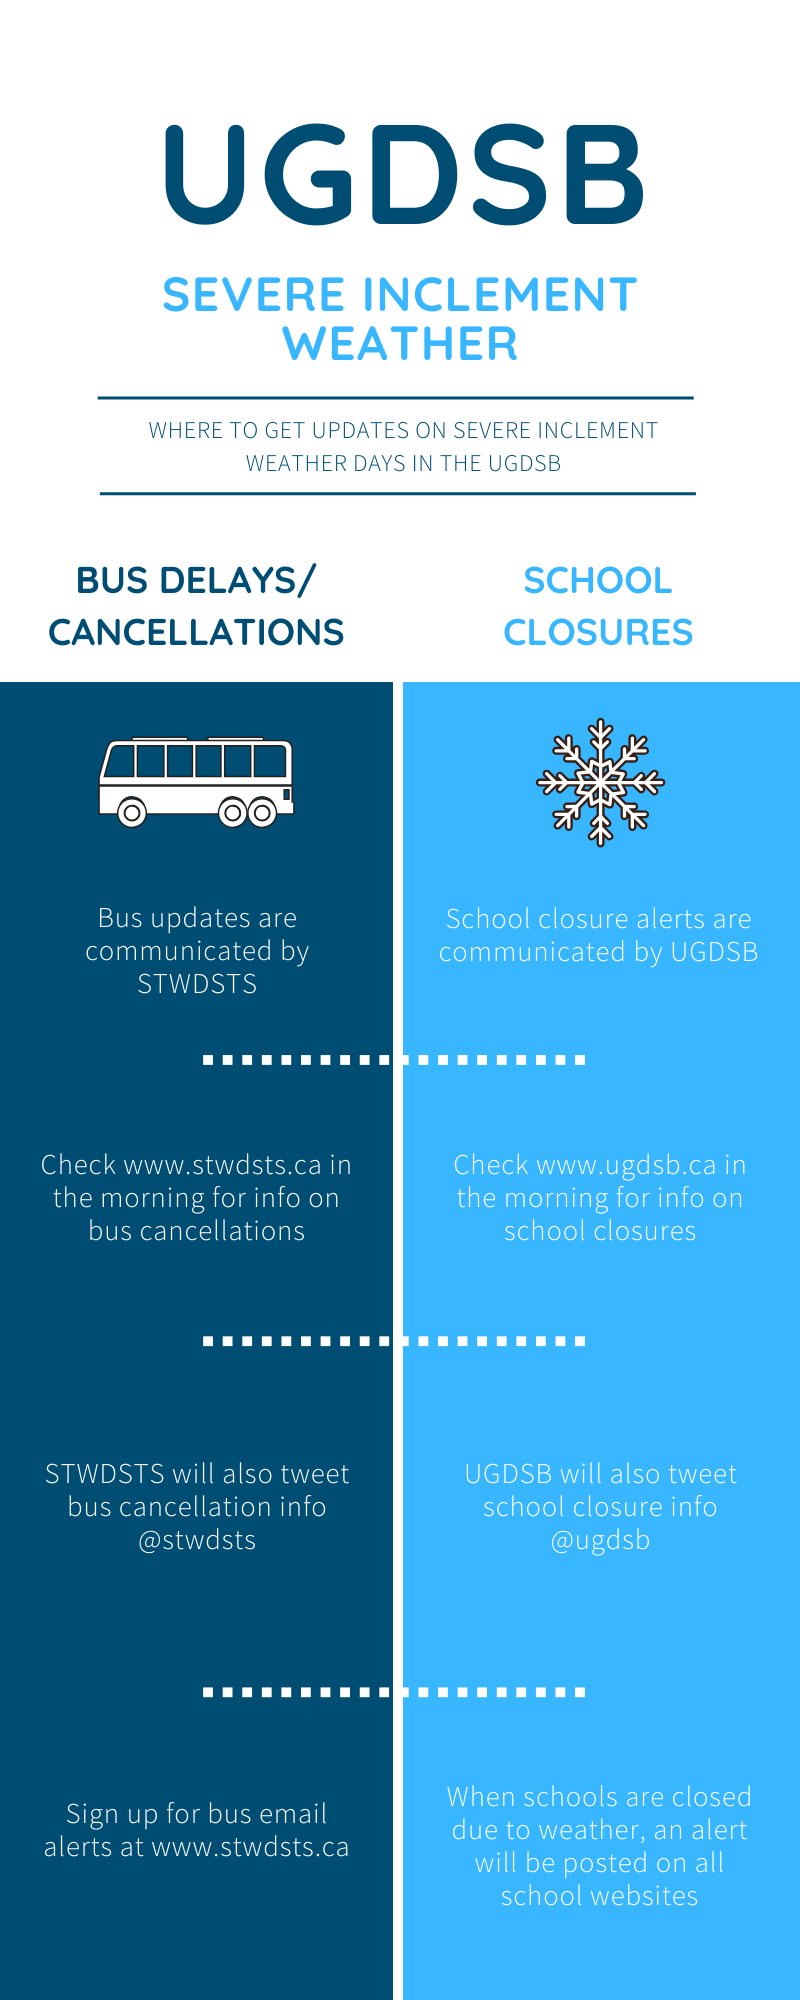 UGDSB Inclement Weather Infographic Nov. 2019